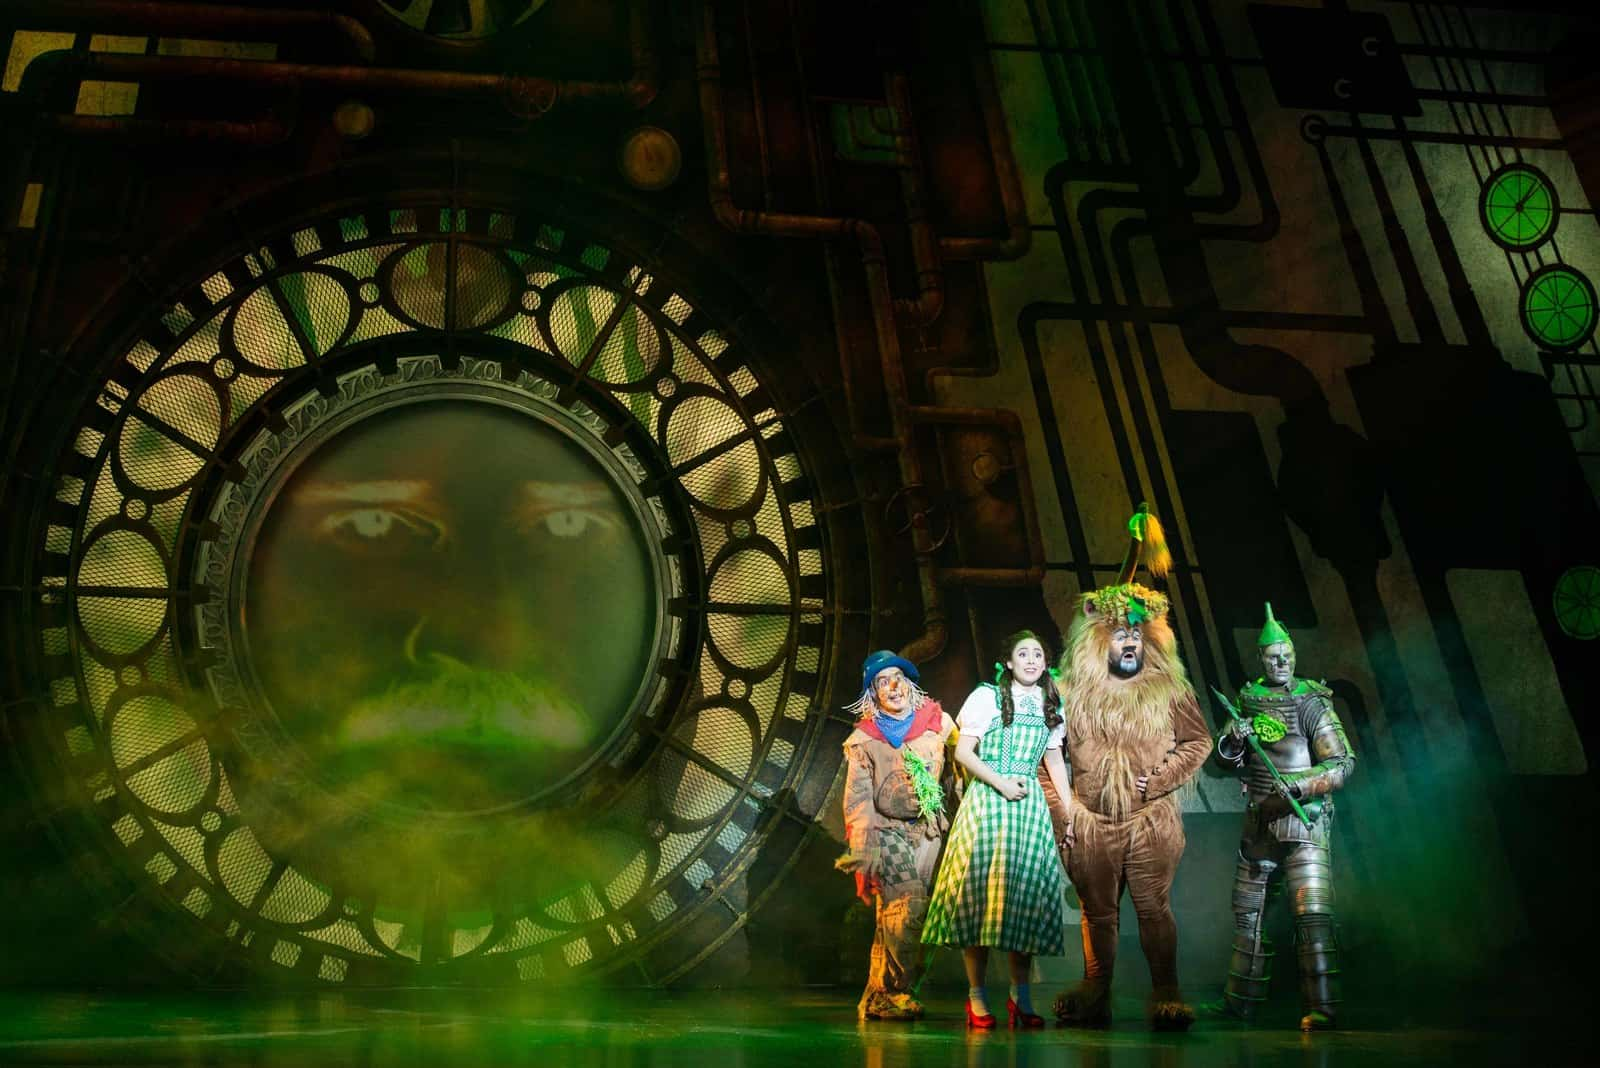 Green curtain oz - Behind The Curtain Wizard Of Oz